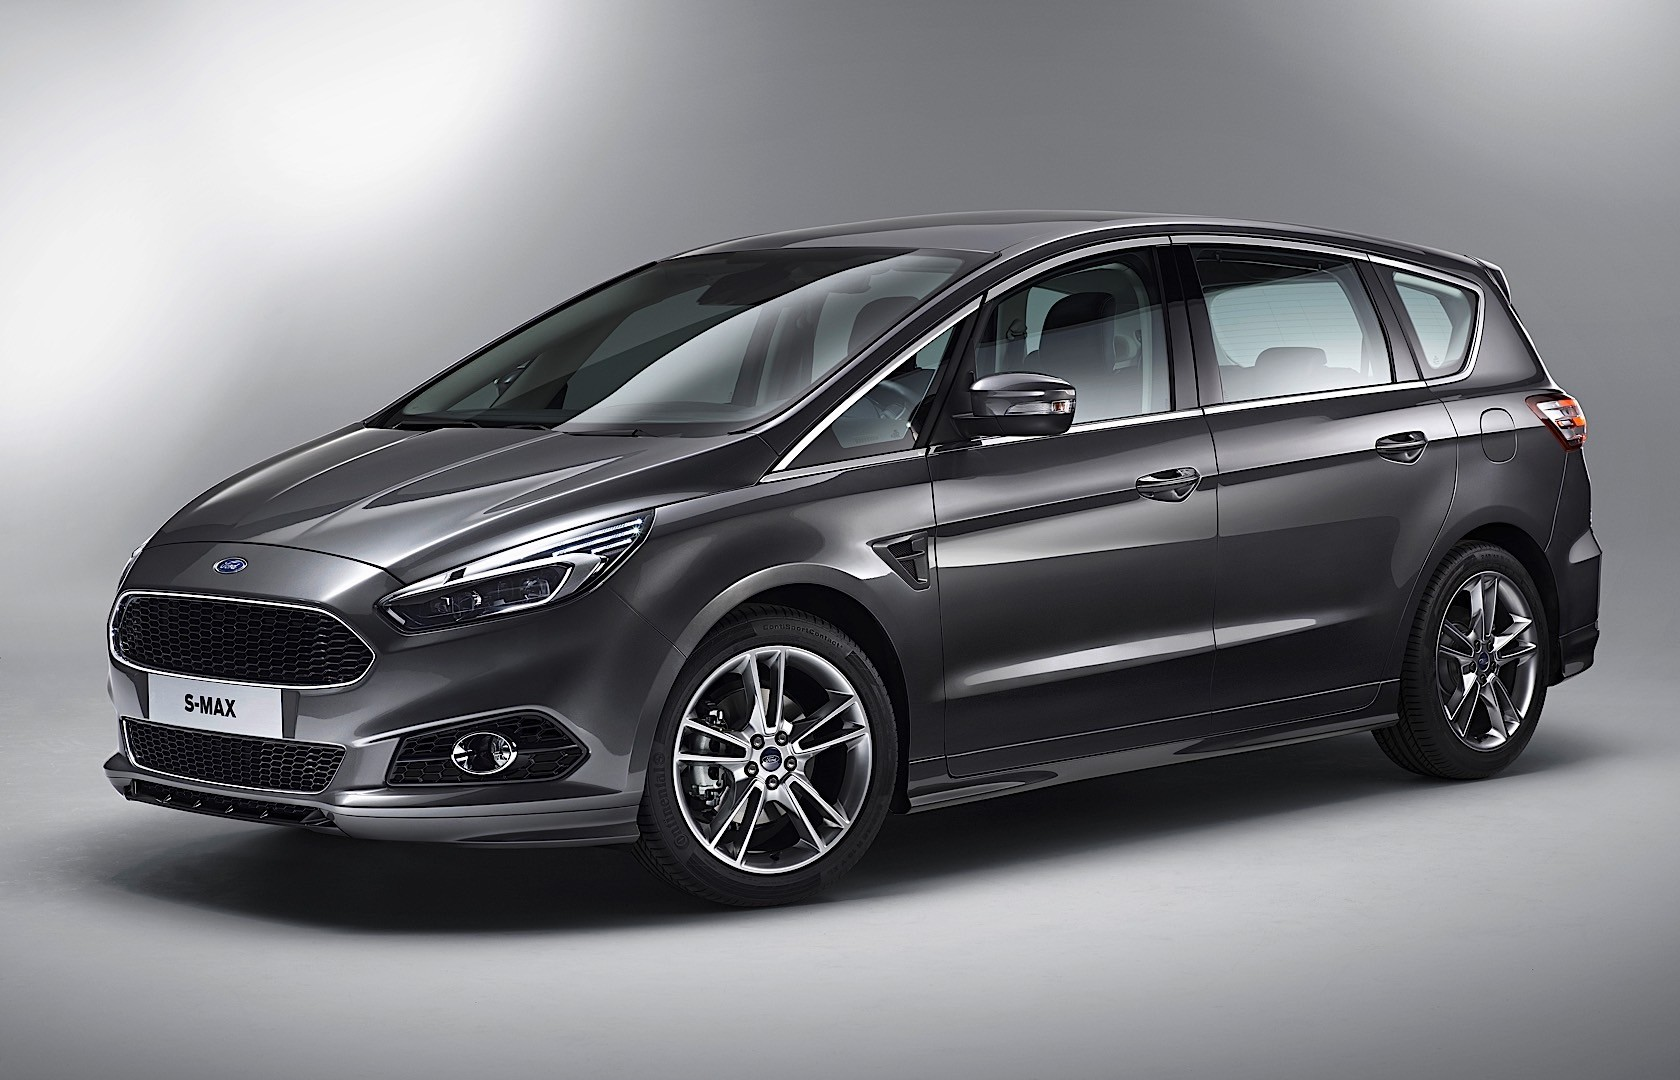 ford s max specs photos 2015 2016 2017 2018 2019. Black Bedroom Furniture Sets. Home Design Ideas